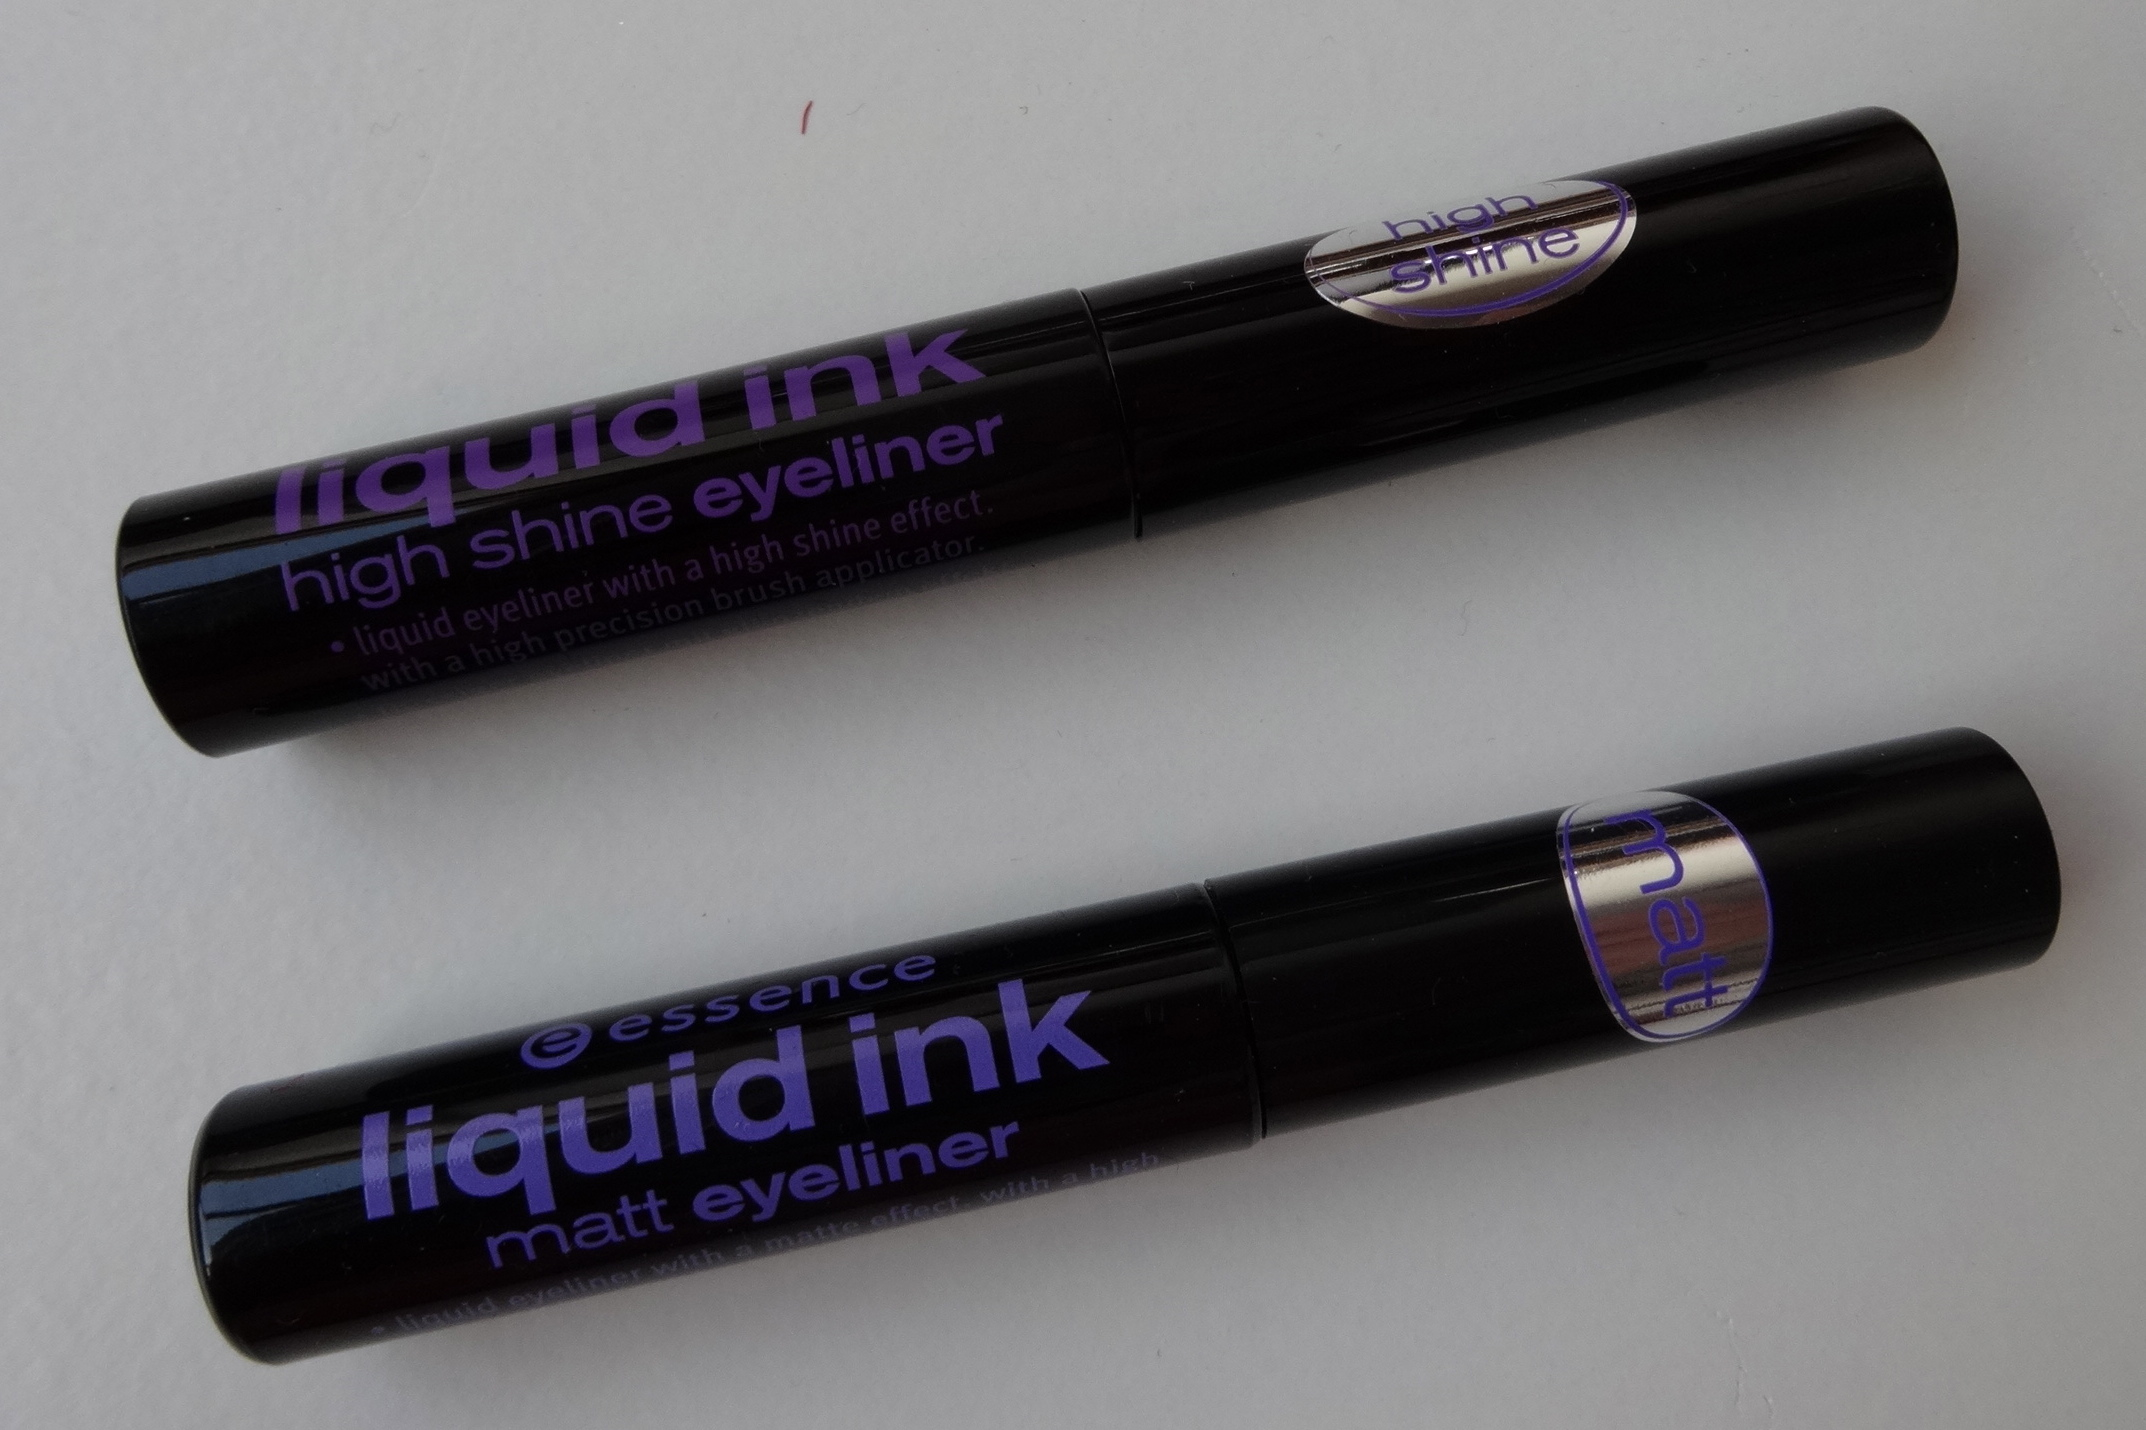 essence matt & high shine liquid eyeliner